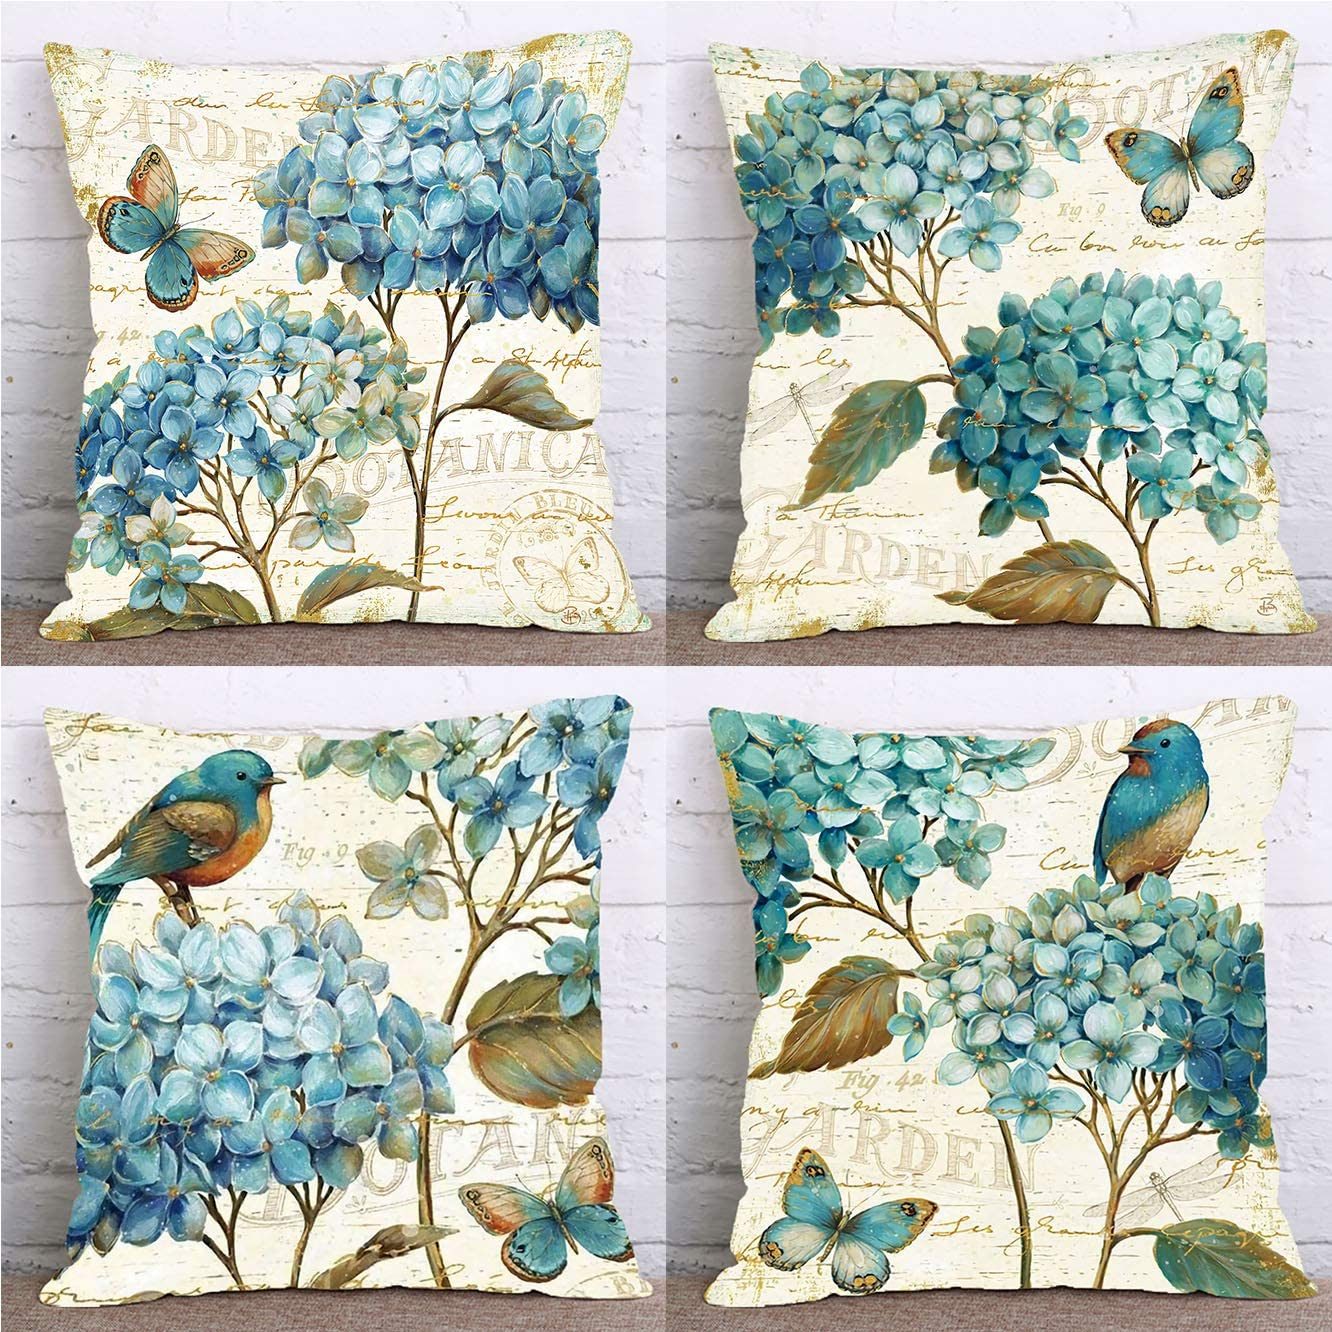 LuckyCow Set of 4 Farmhouse Decorative Throw Pillow Covers Vintage Orchid Theme Butterfly Bird Pillows Cover Holiday Decor Home Car Bedding Cushion Cover Cotton Linen 18x18 Inch